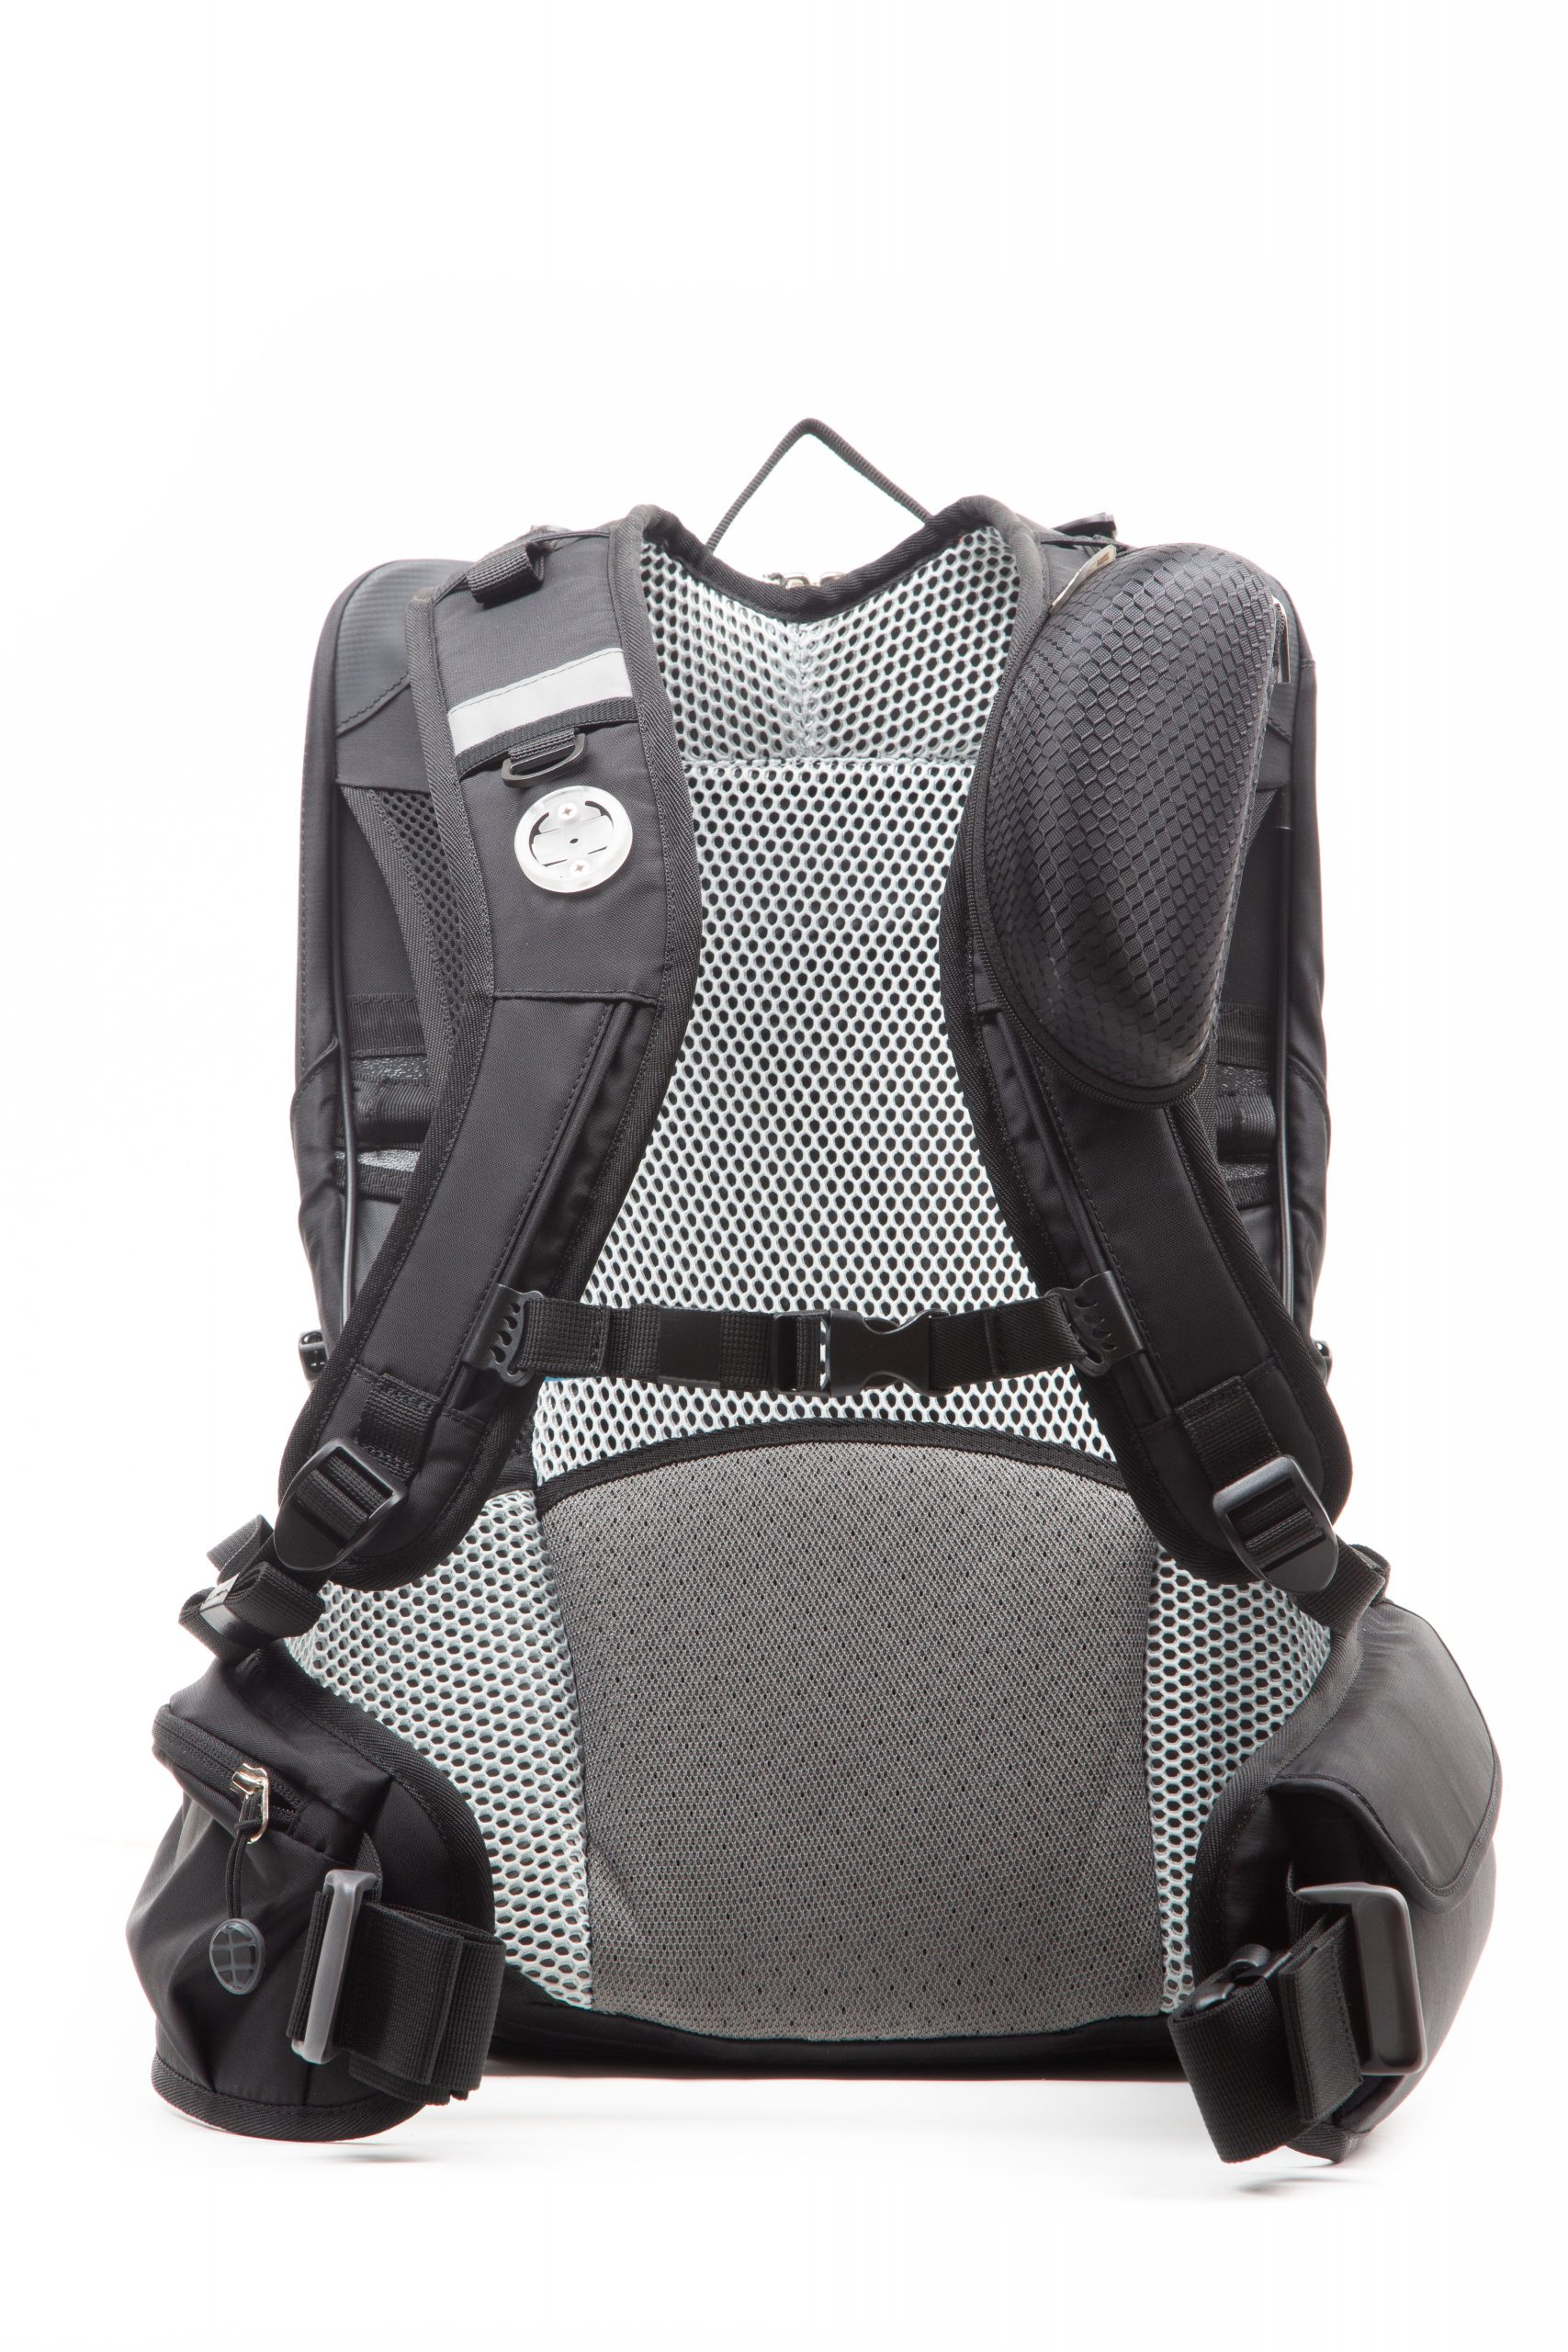 Shellback Bike to Work Backpack Front View with Glasses Case